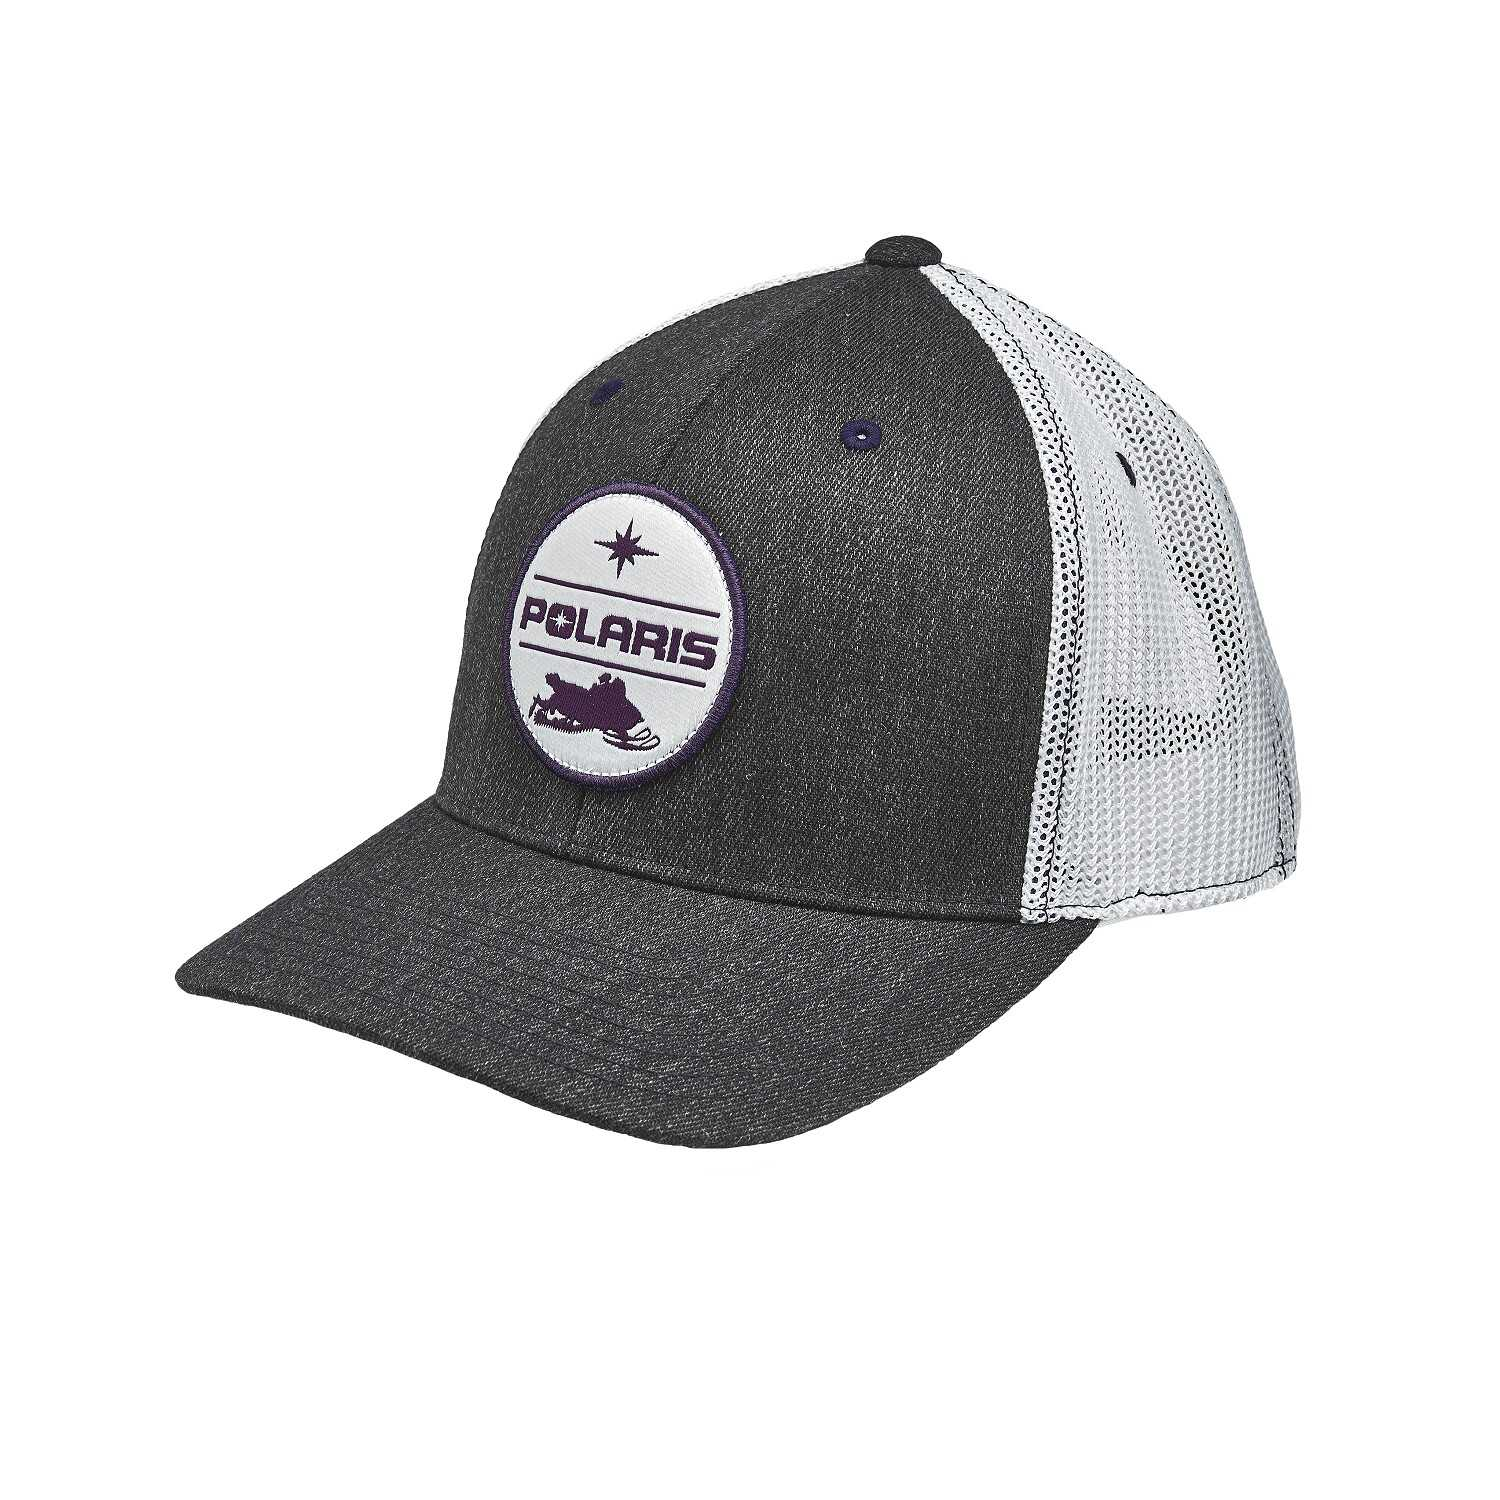 Women's Adjustable Mesh Snapback Hat with Polaris® Snow Patch, Gray/White